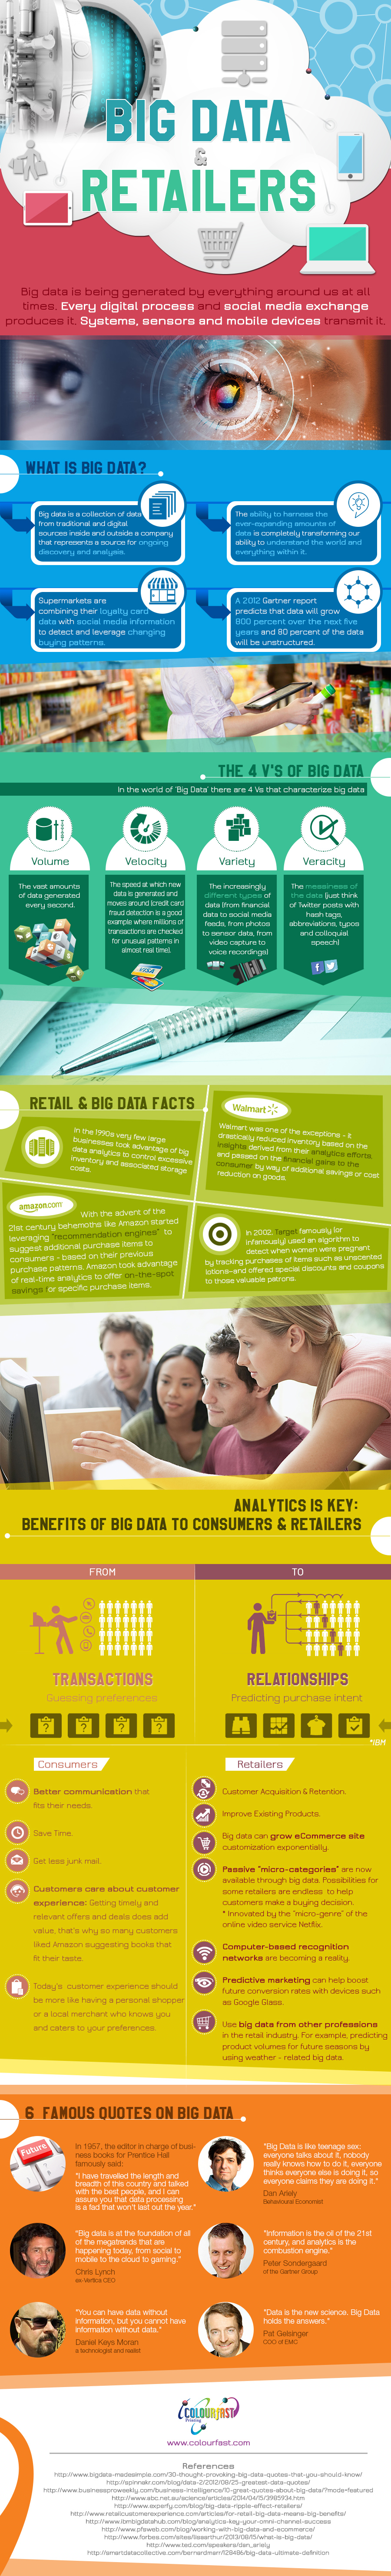 infographic on big data and retailers